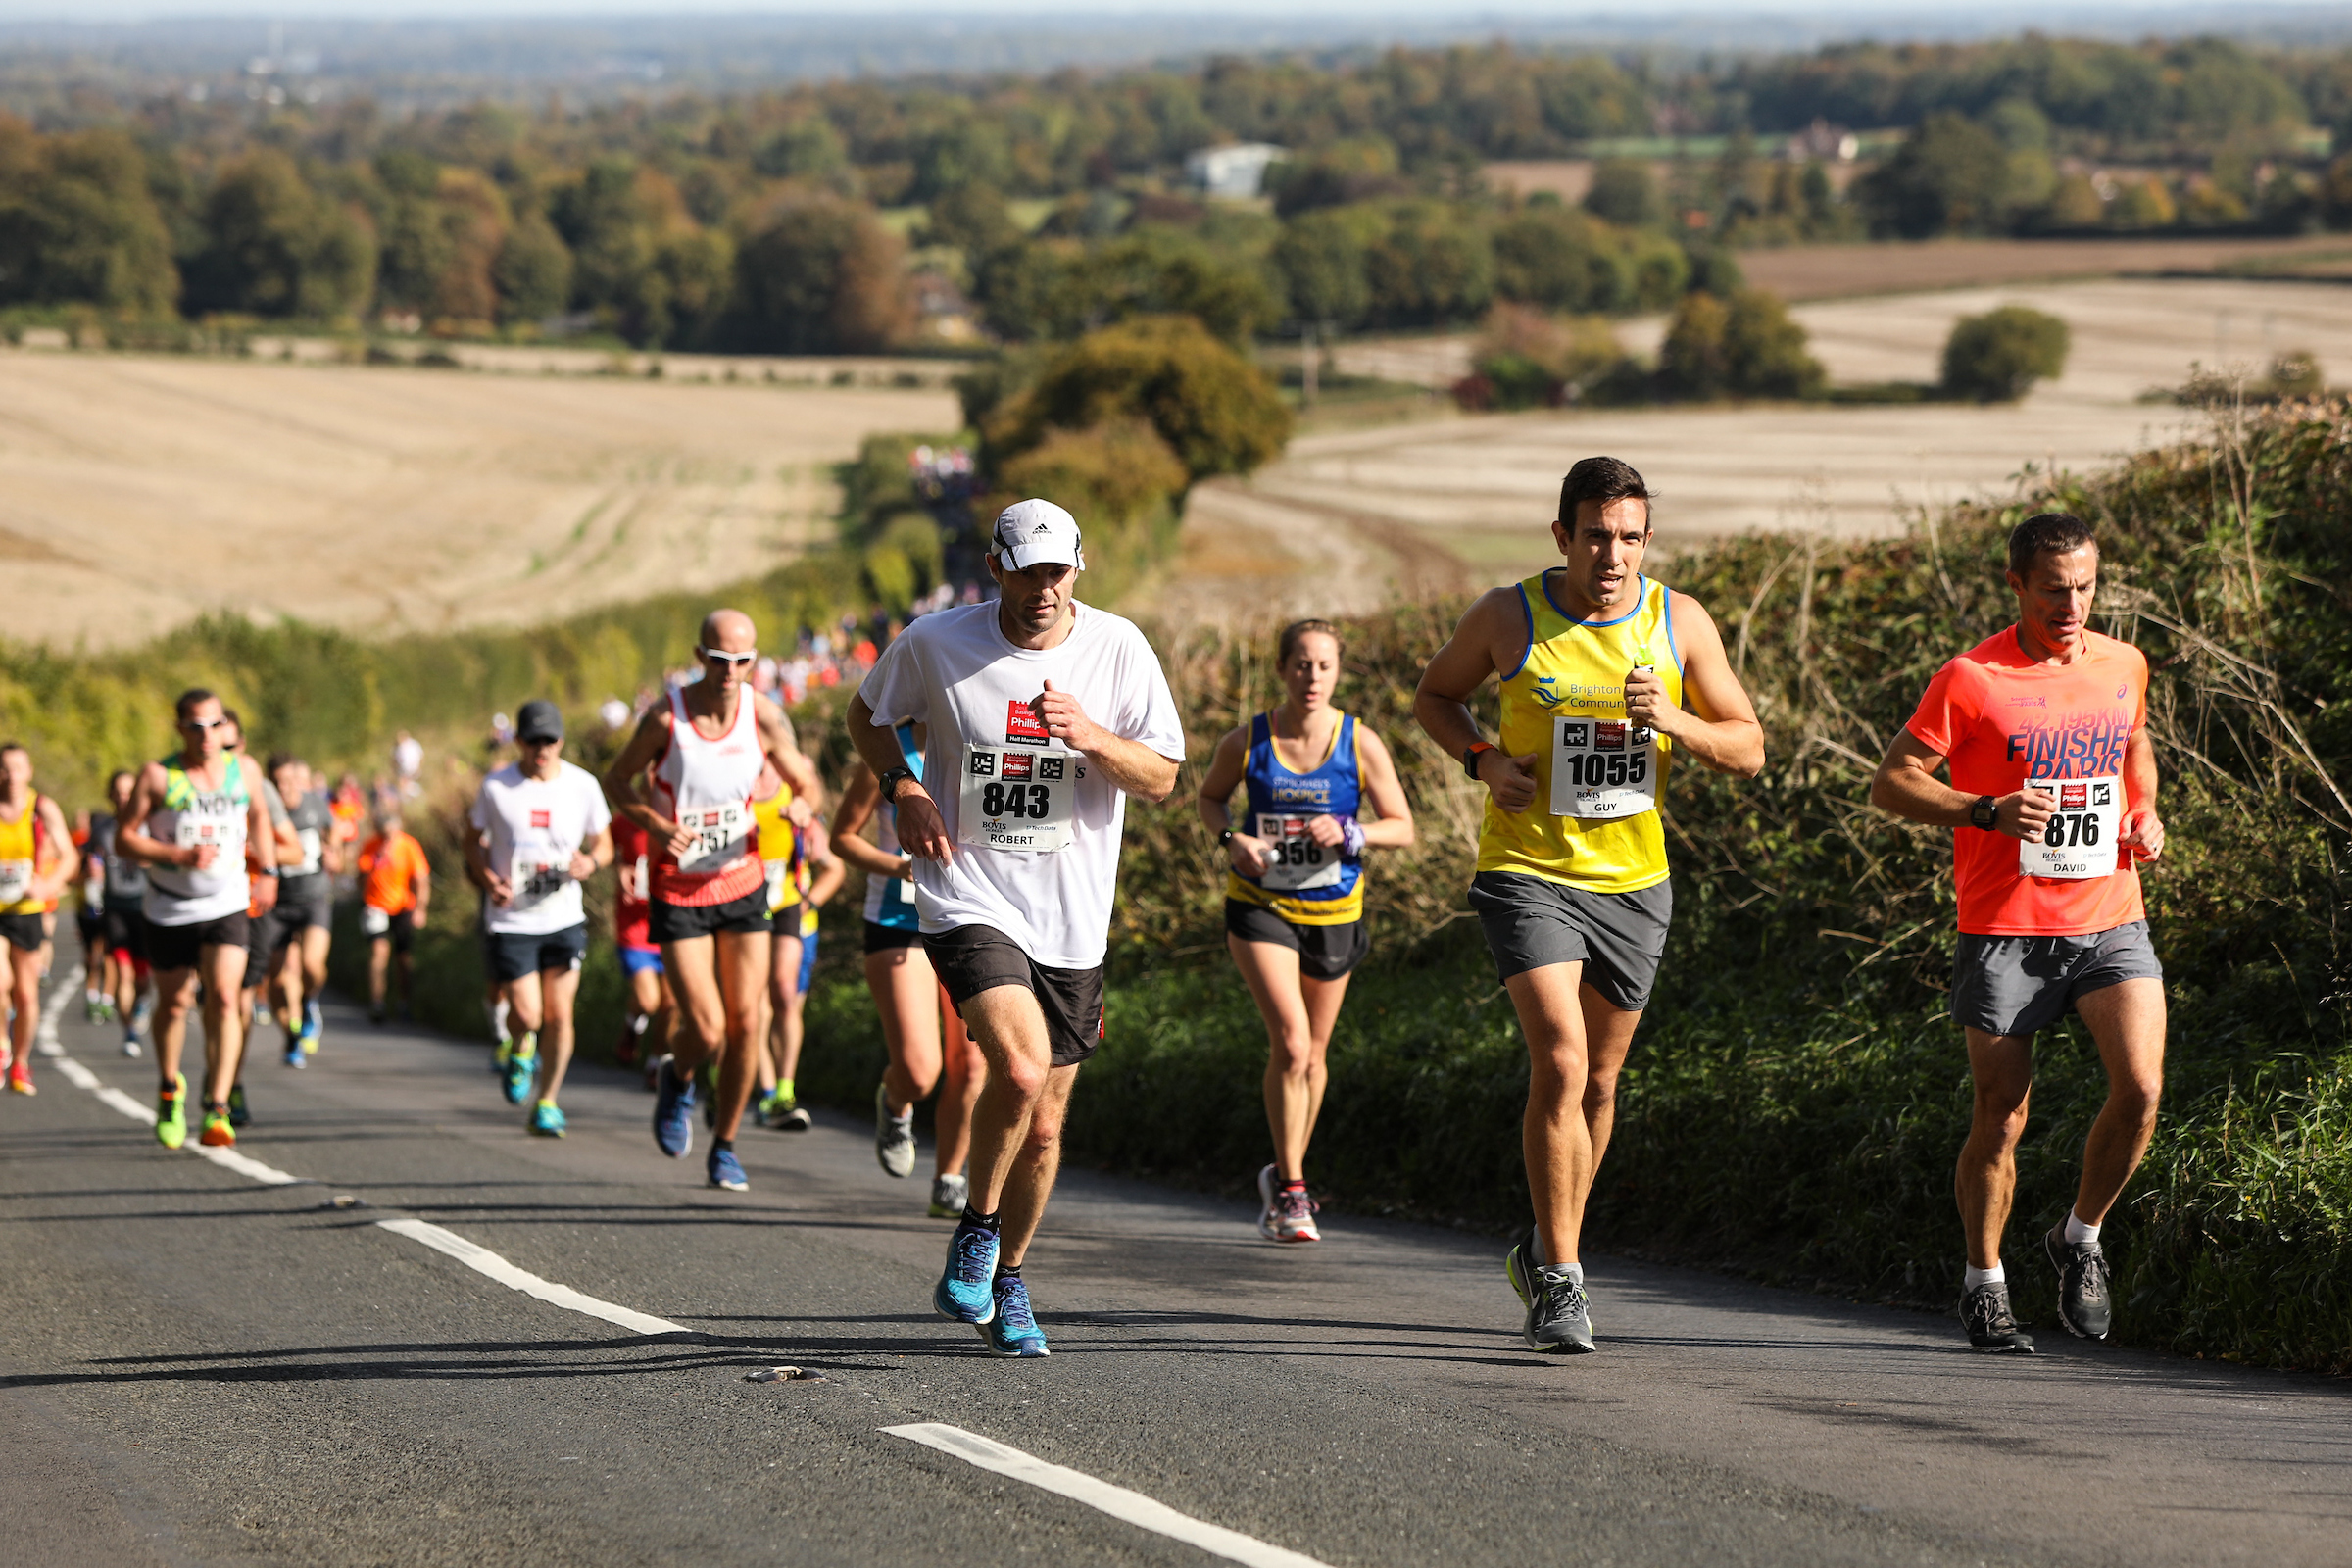 Runners at last year's half marathon